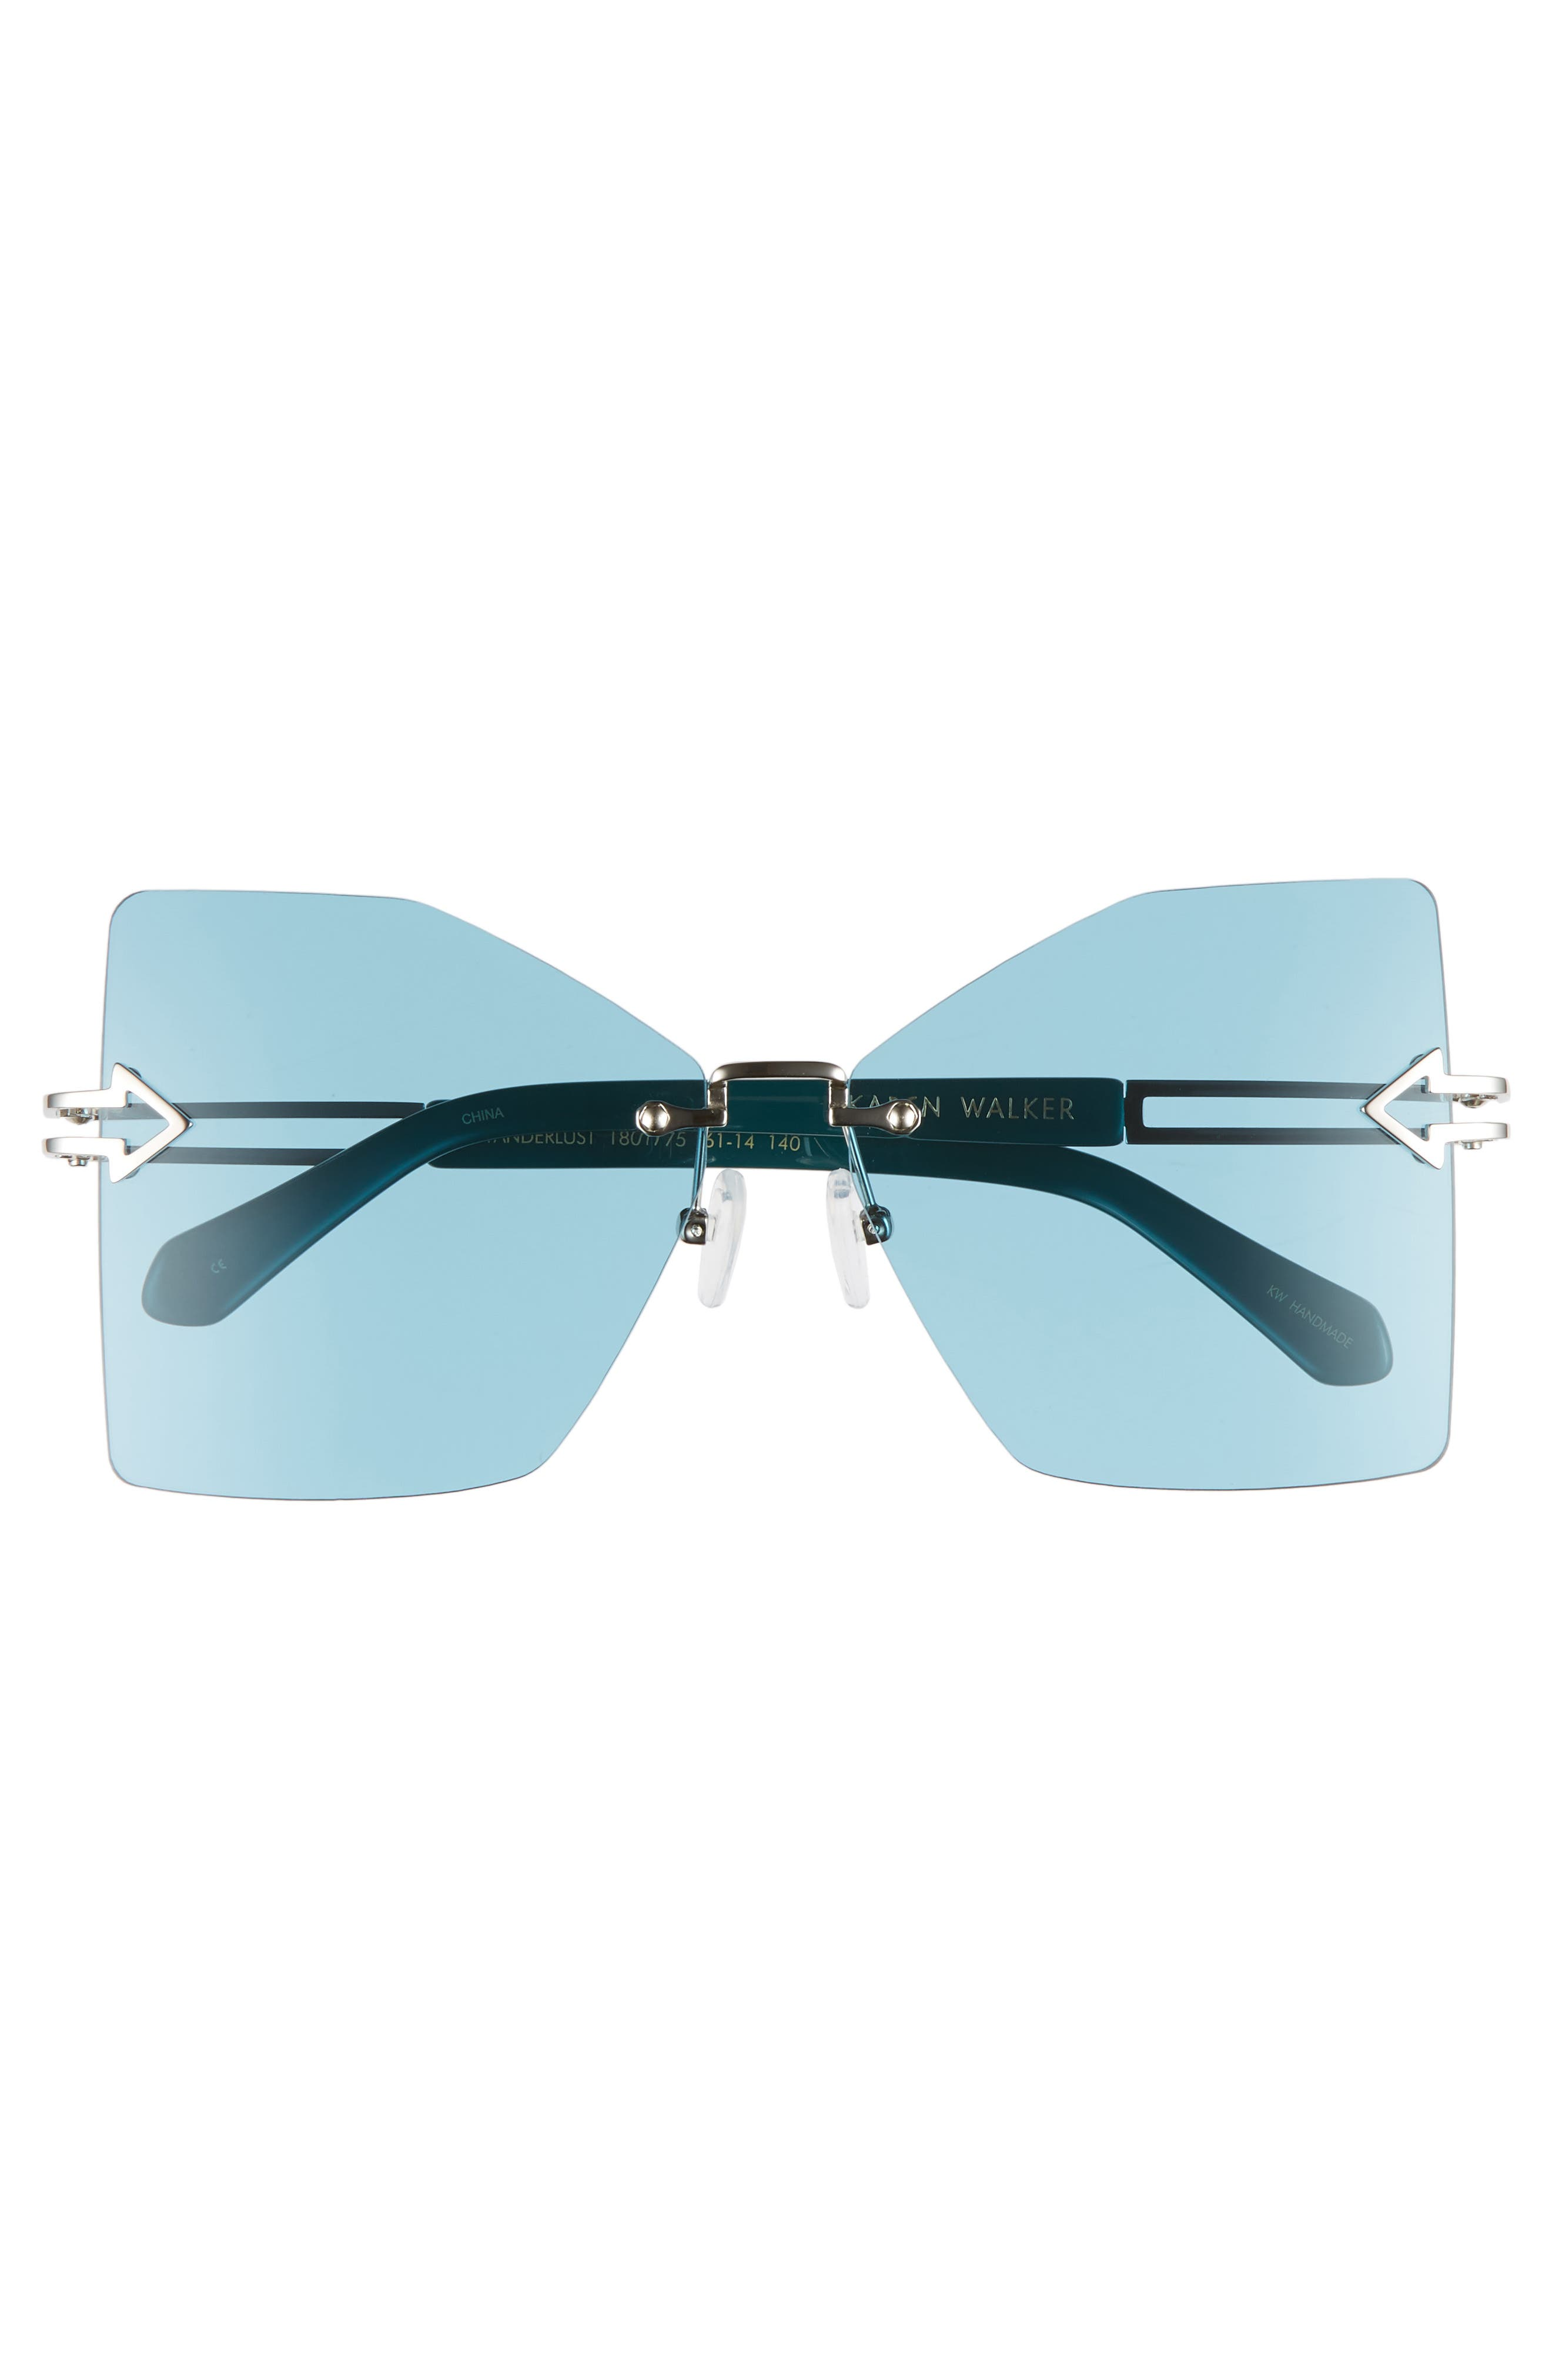 Wanderlust 61mm Butterfly Sunglasses,                             Alternate thumbnail 3, color,                             SHINY SILVER/ EMERALD